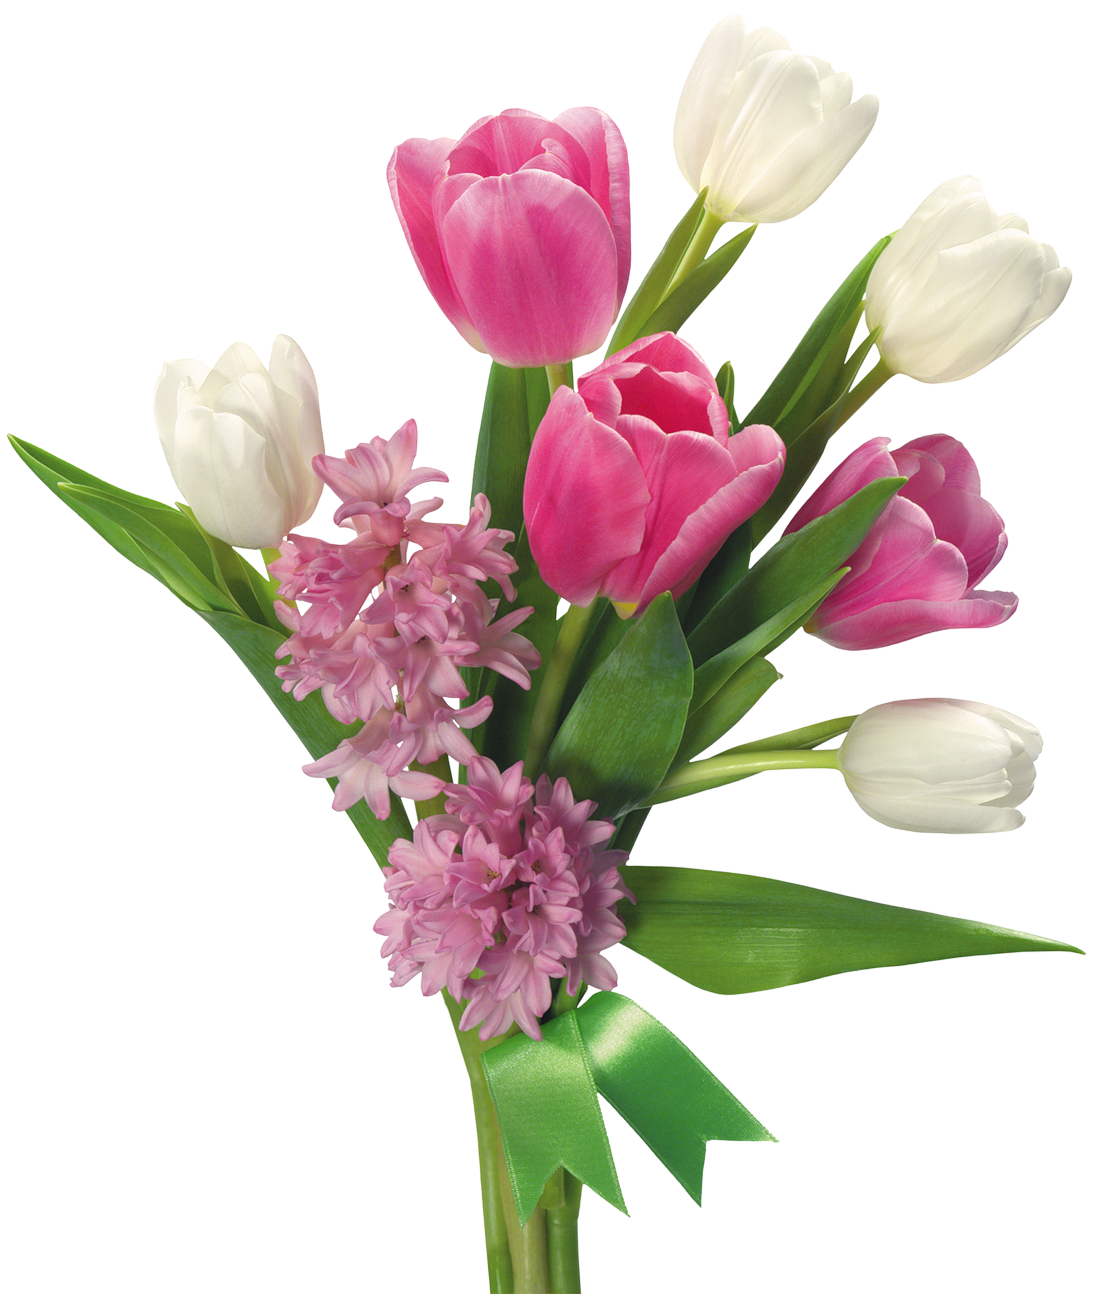 Pink Roses Flowers Bouquet Hd PNG Image